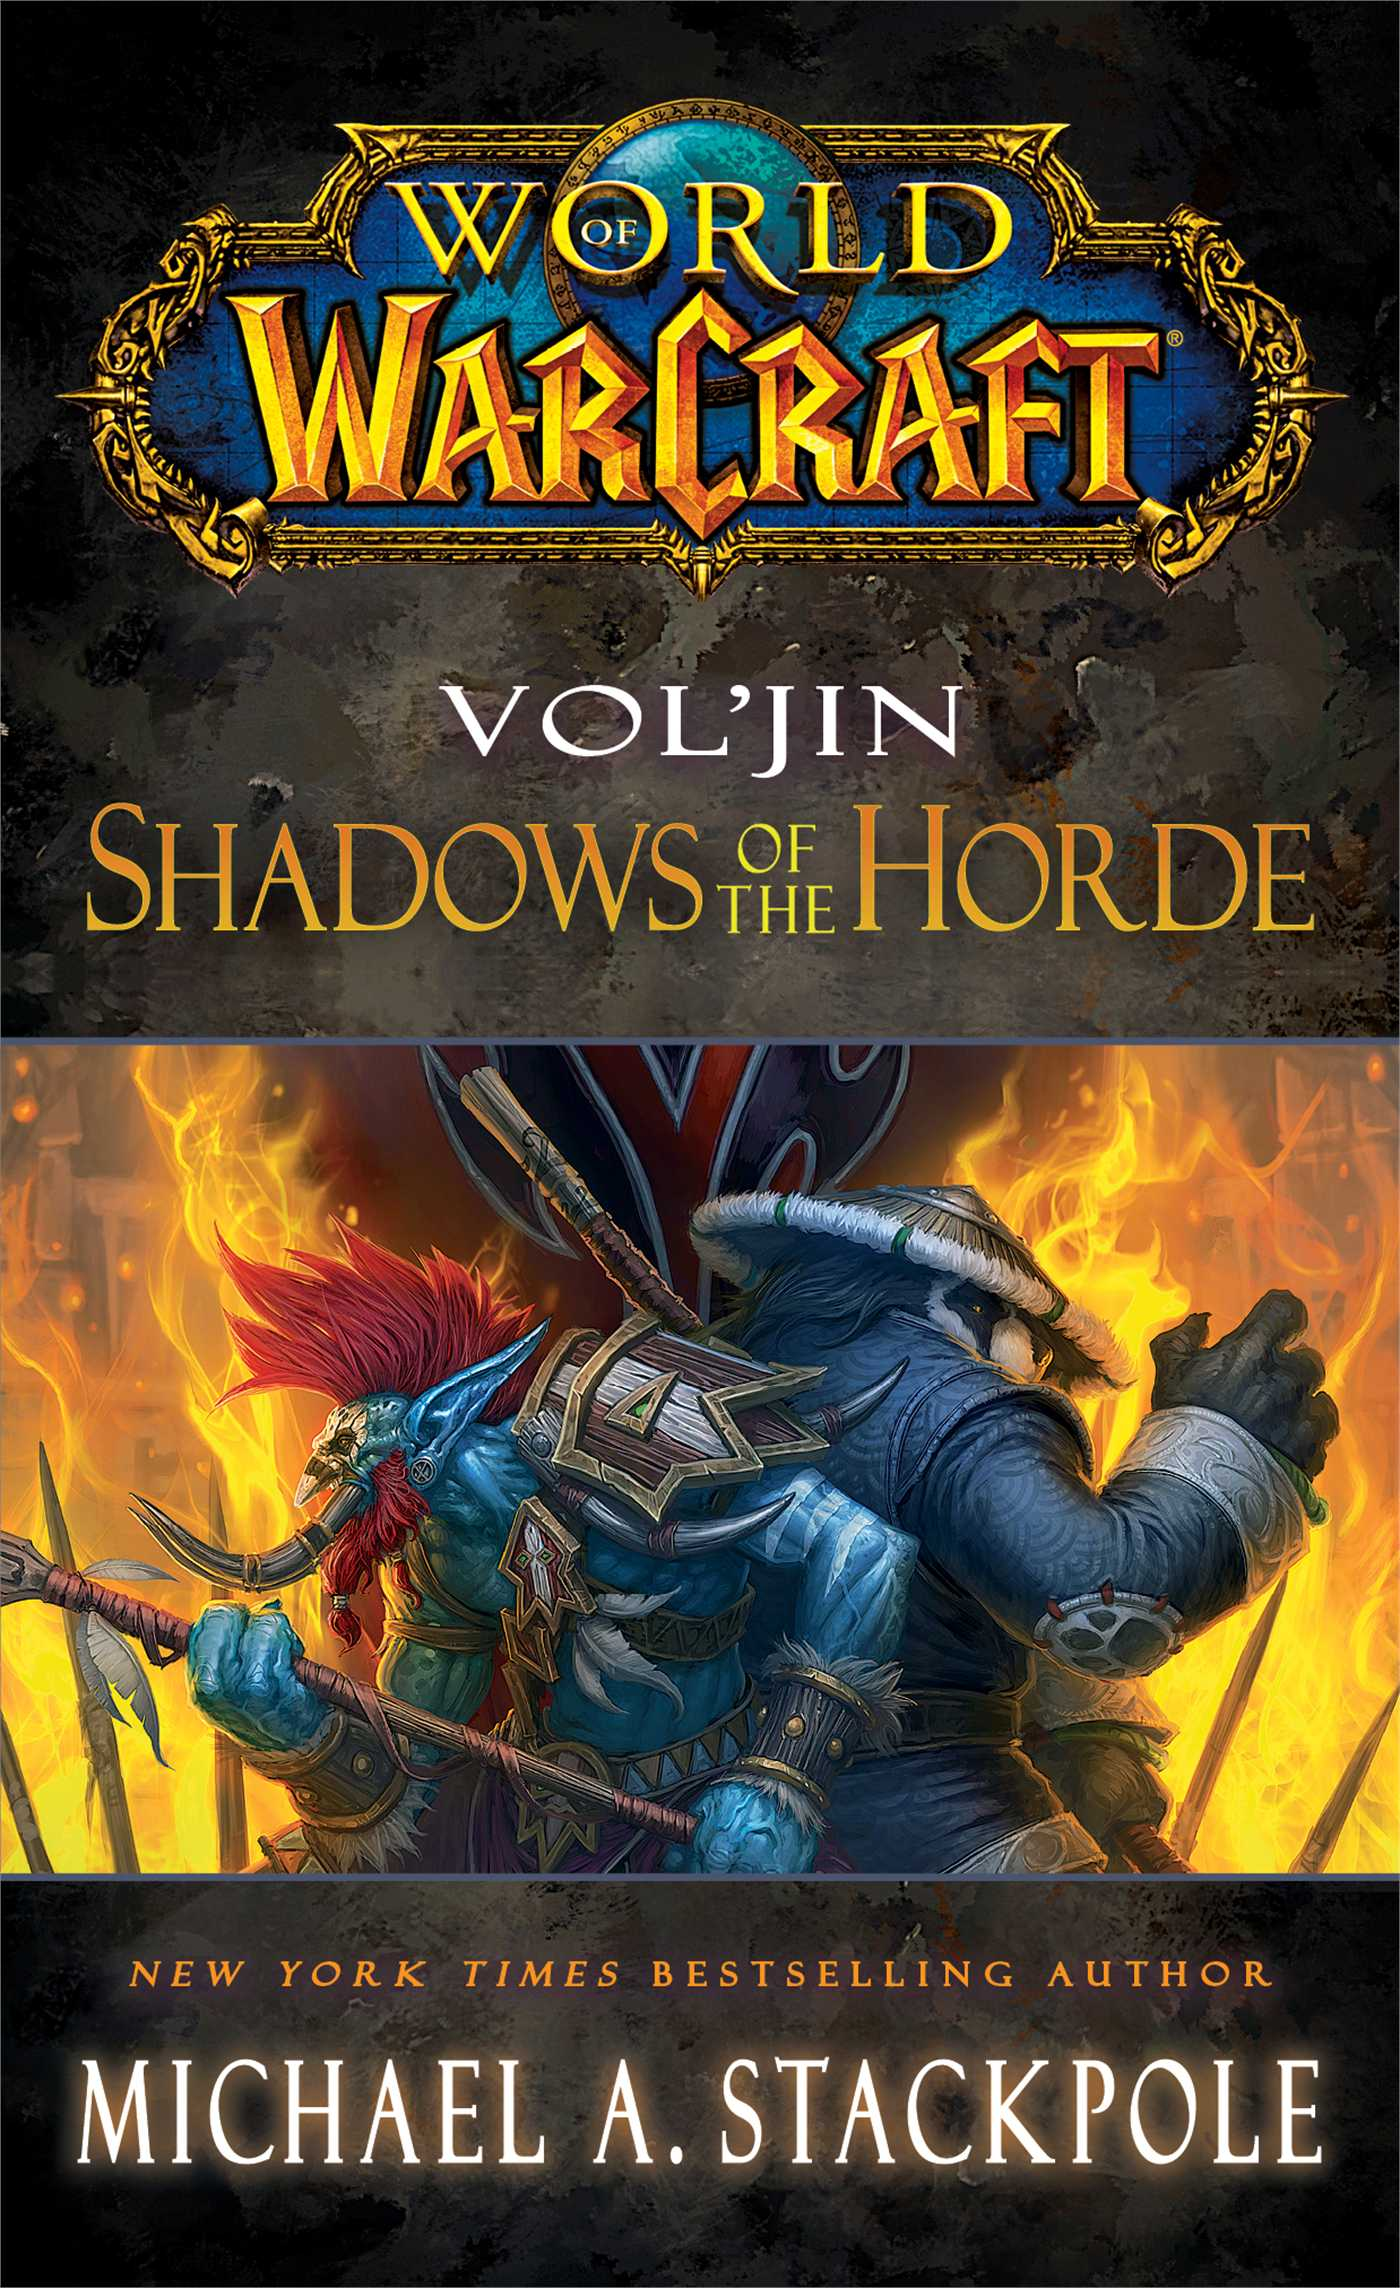 World of Warcraft: Vol'jin: Shadows of the Horde | Book by